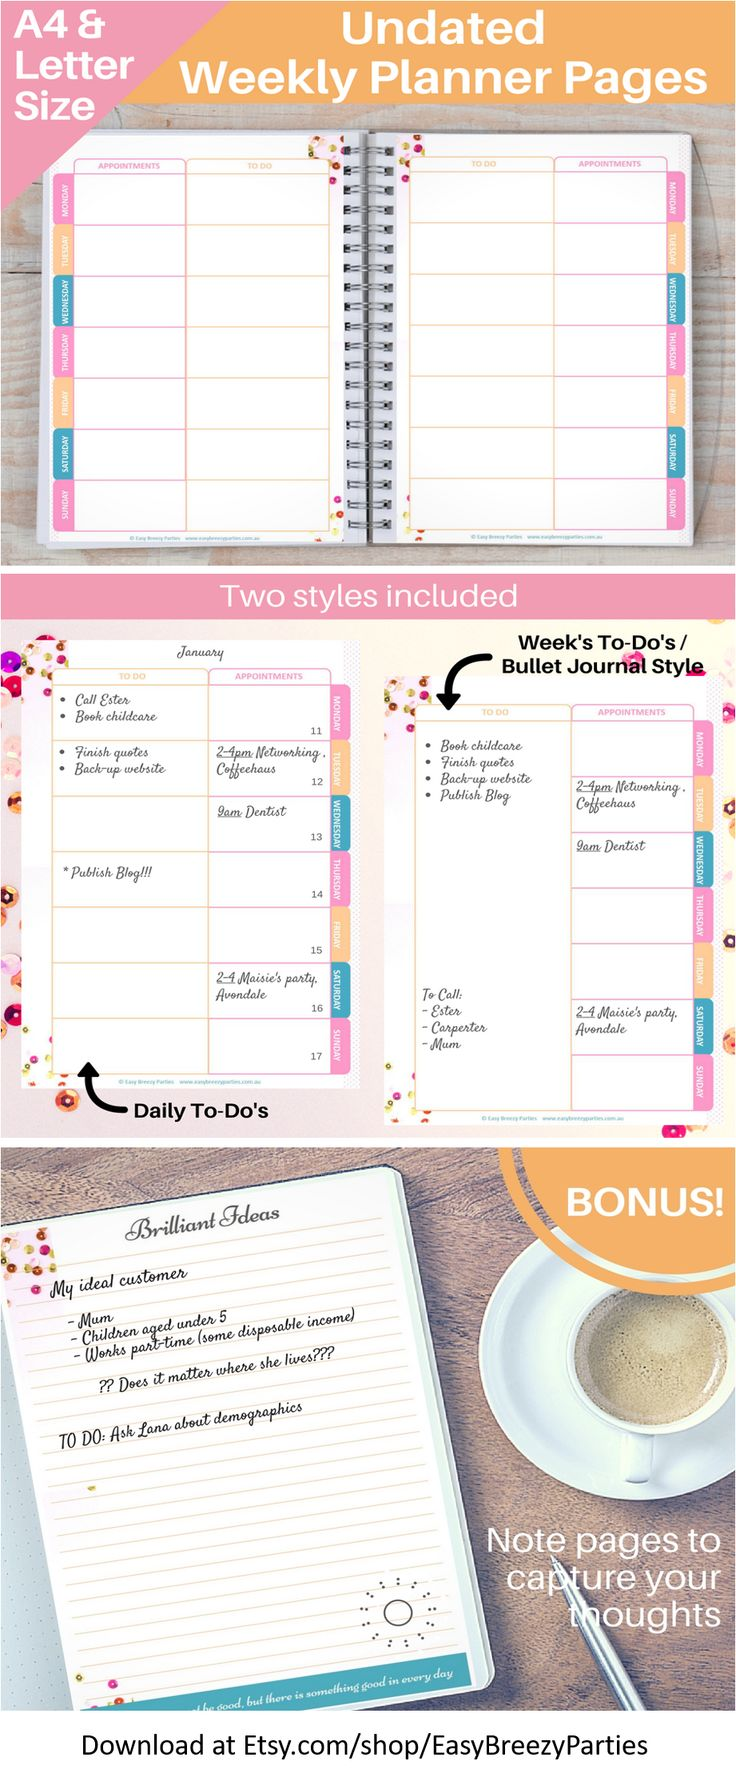 Printable undated weekly planner with two versions to choose. Includes bonus note pages with inspiration quotes.